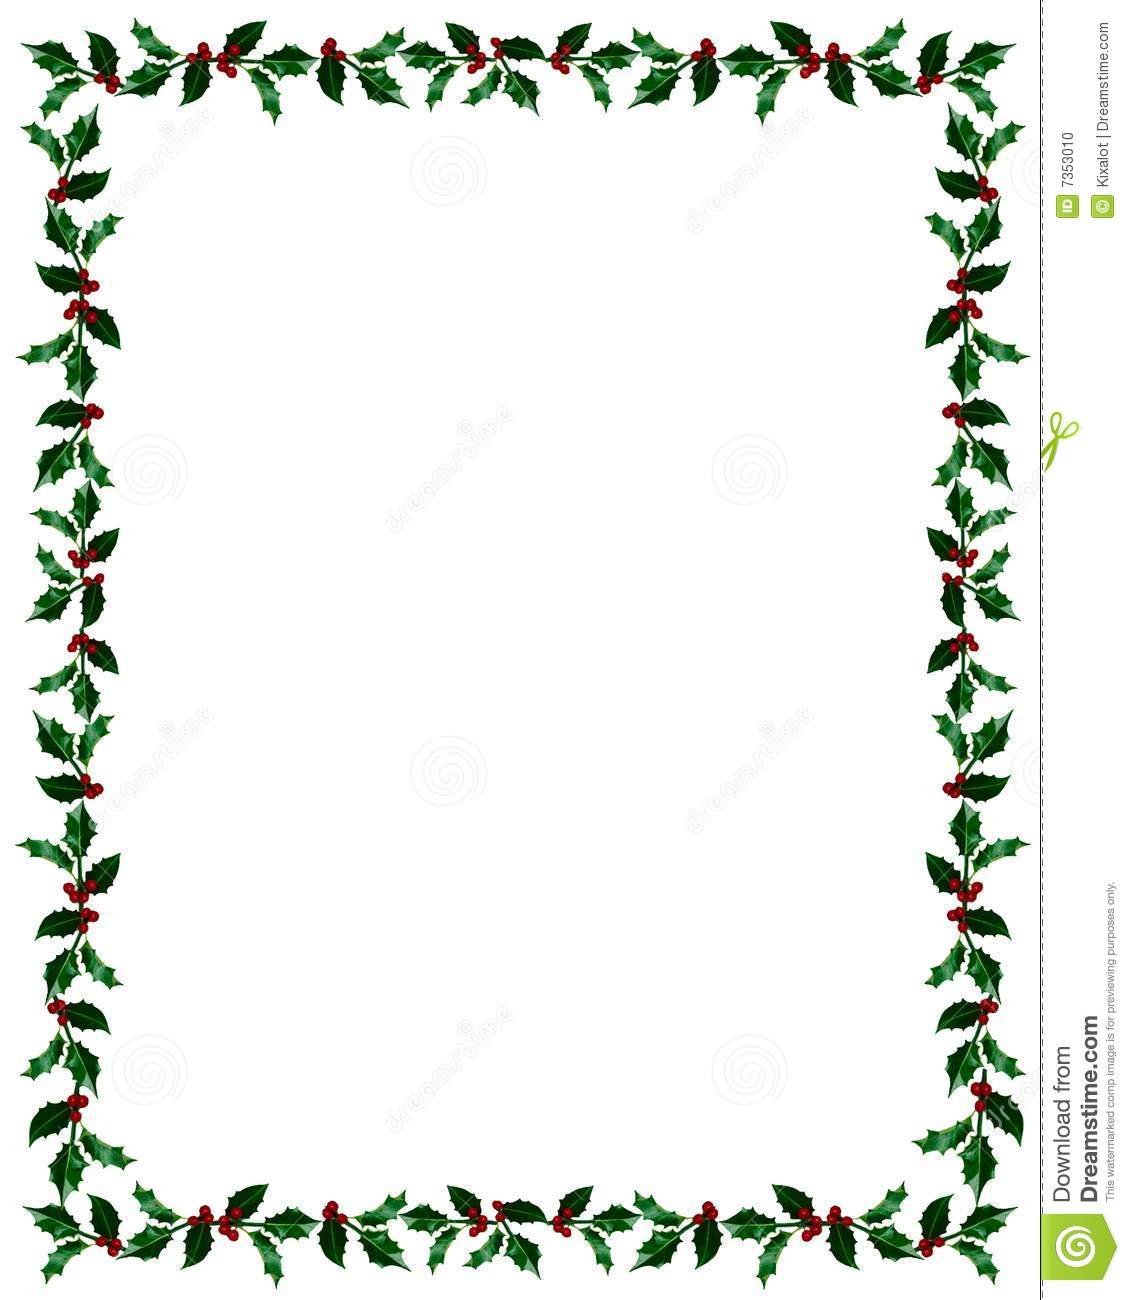 Frame clipart holiday Suitable for Clipart border Clipart